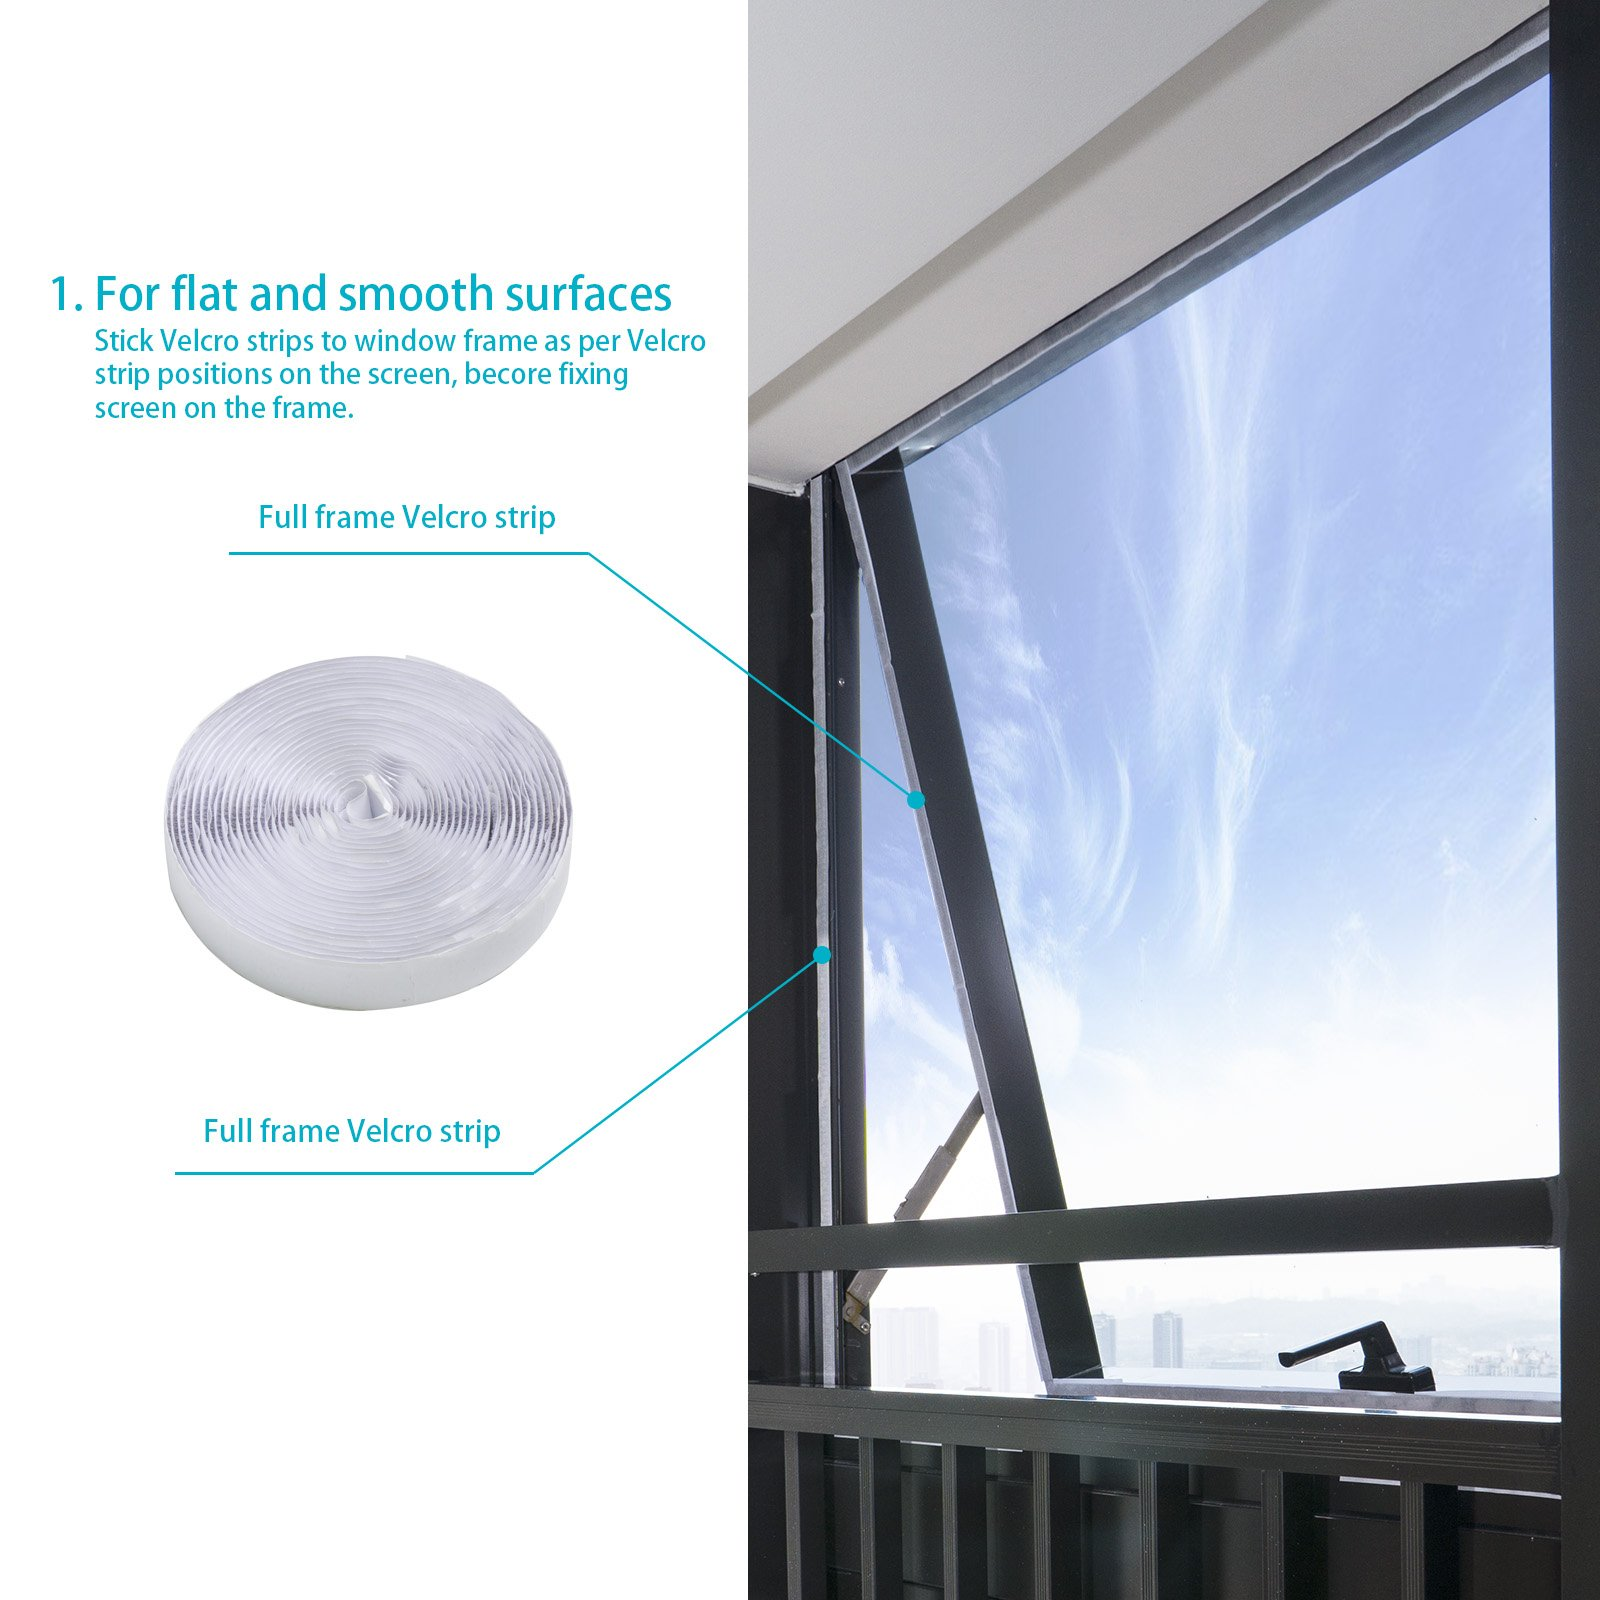 HOOMEE 300 cm Universal Window Seal for Portable Air Conditioner and Tumble Dryer – Works with Every Mobile Air-Conditioning Unit, Easy to Install - Air Exchange Guards with Zip and Adhesive Fastener by HOOMEE (Image #3)